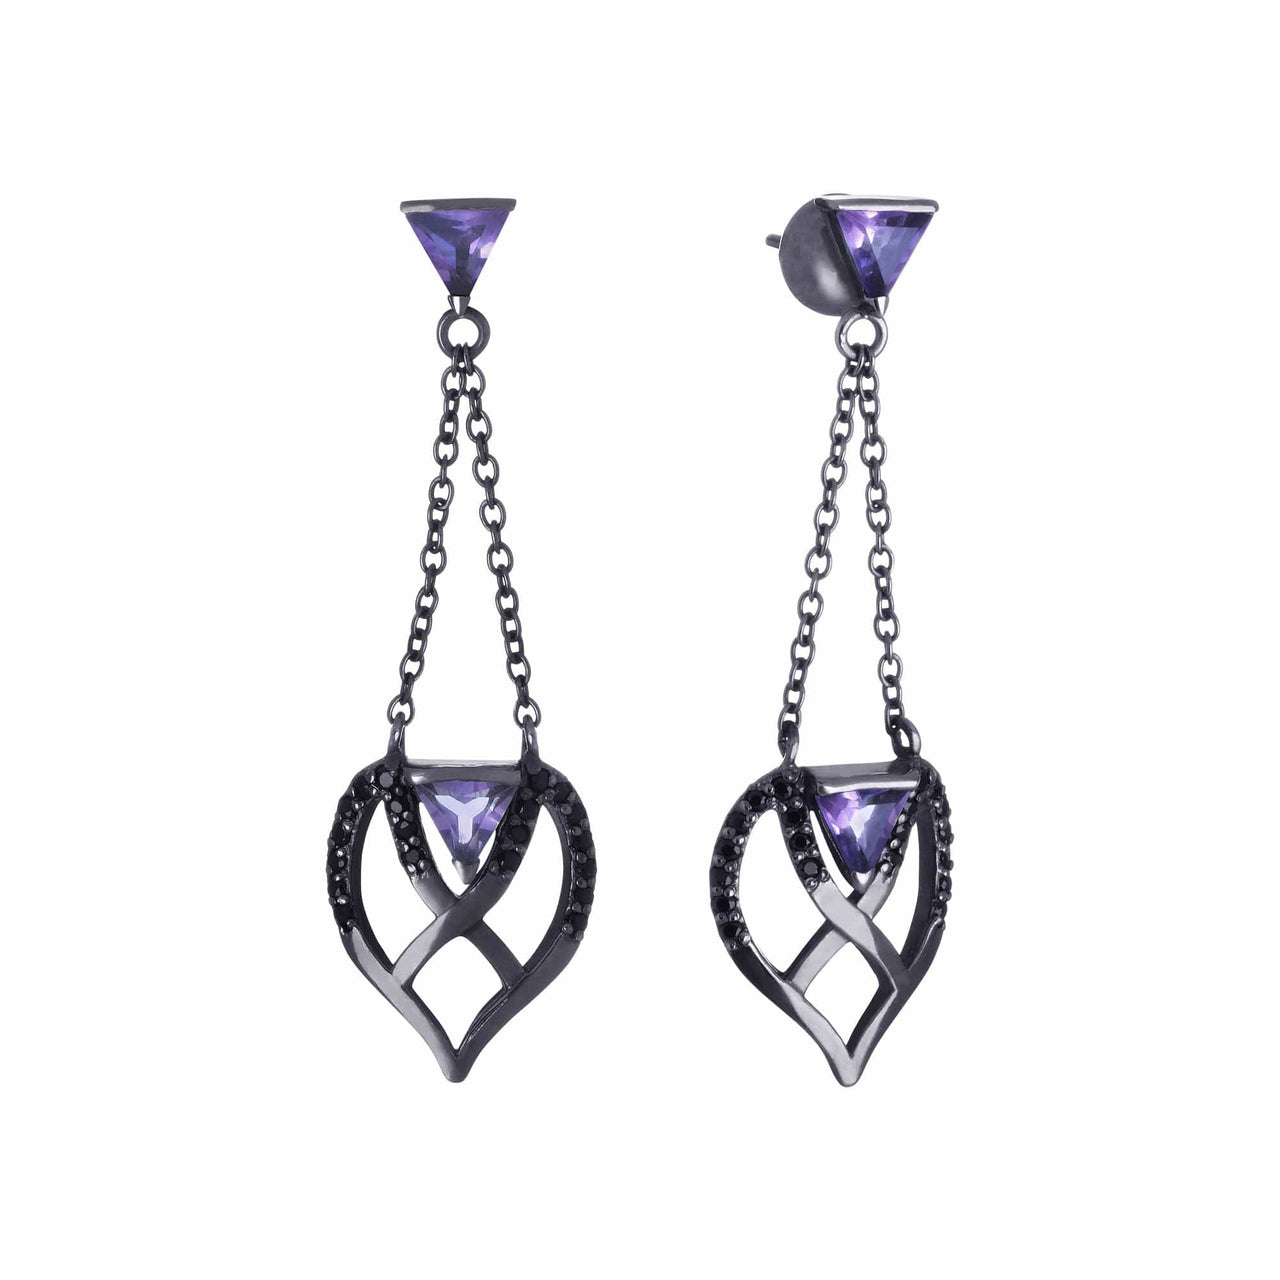 Mel Bandeira Earrings Black Rhodium Plated Silver Double Bow Earrings with Amethyst and Black Spinel